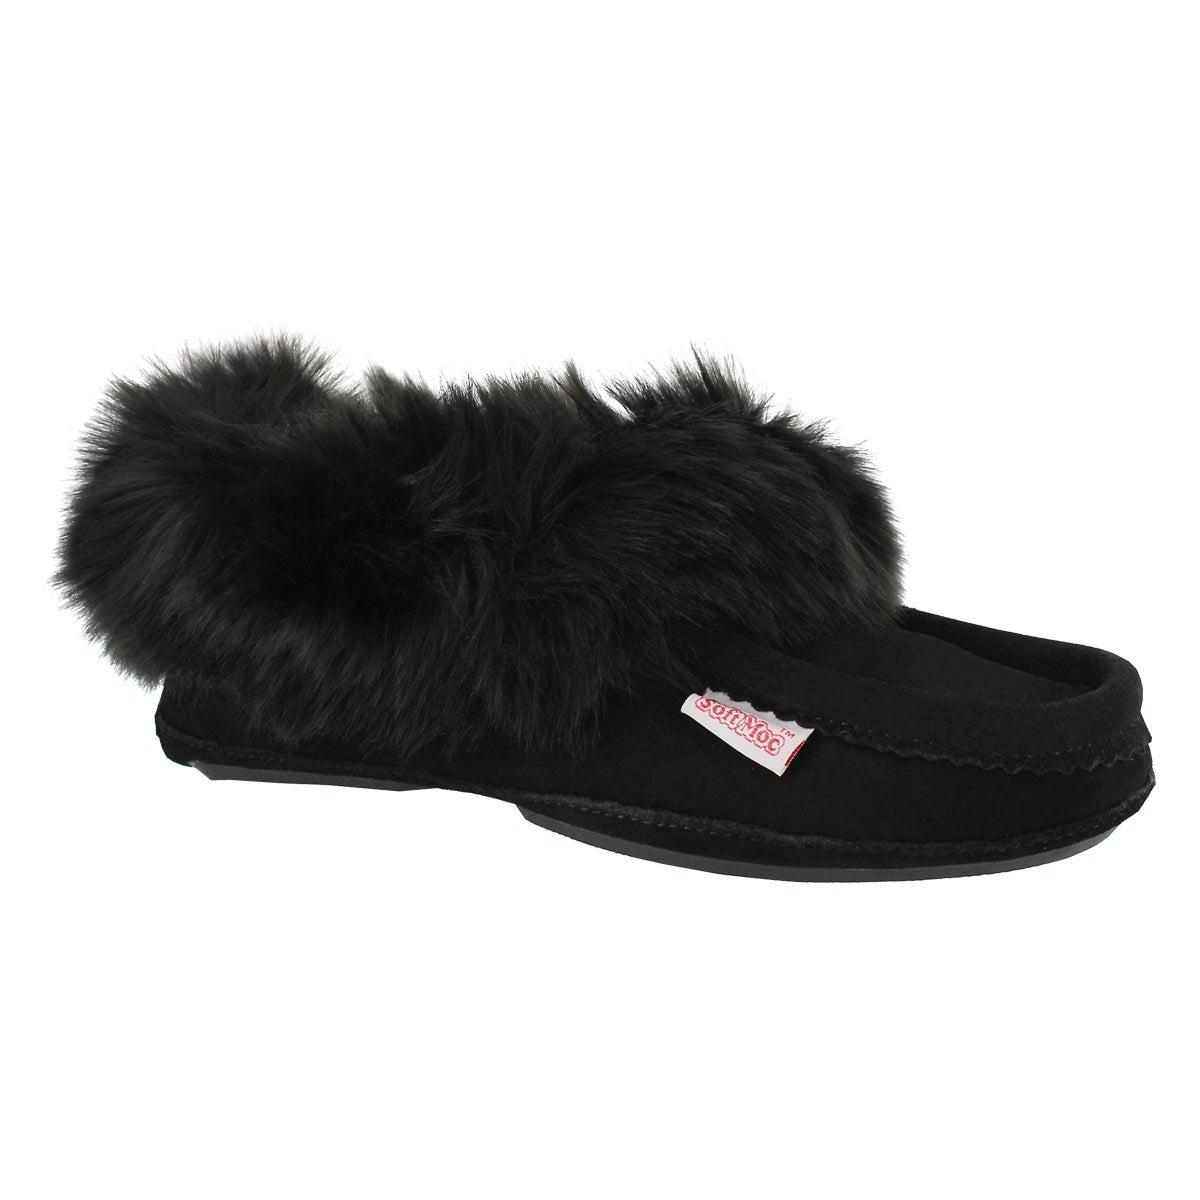 Women's TOO CUTE black lined moccasins